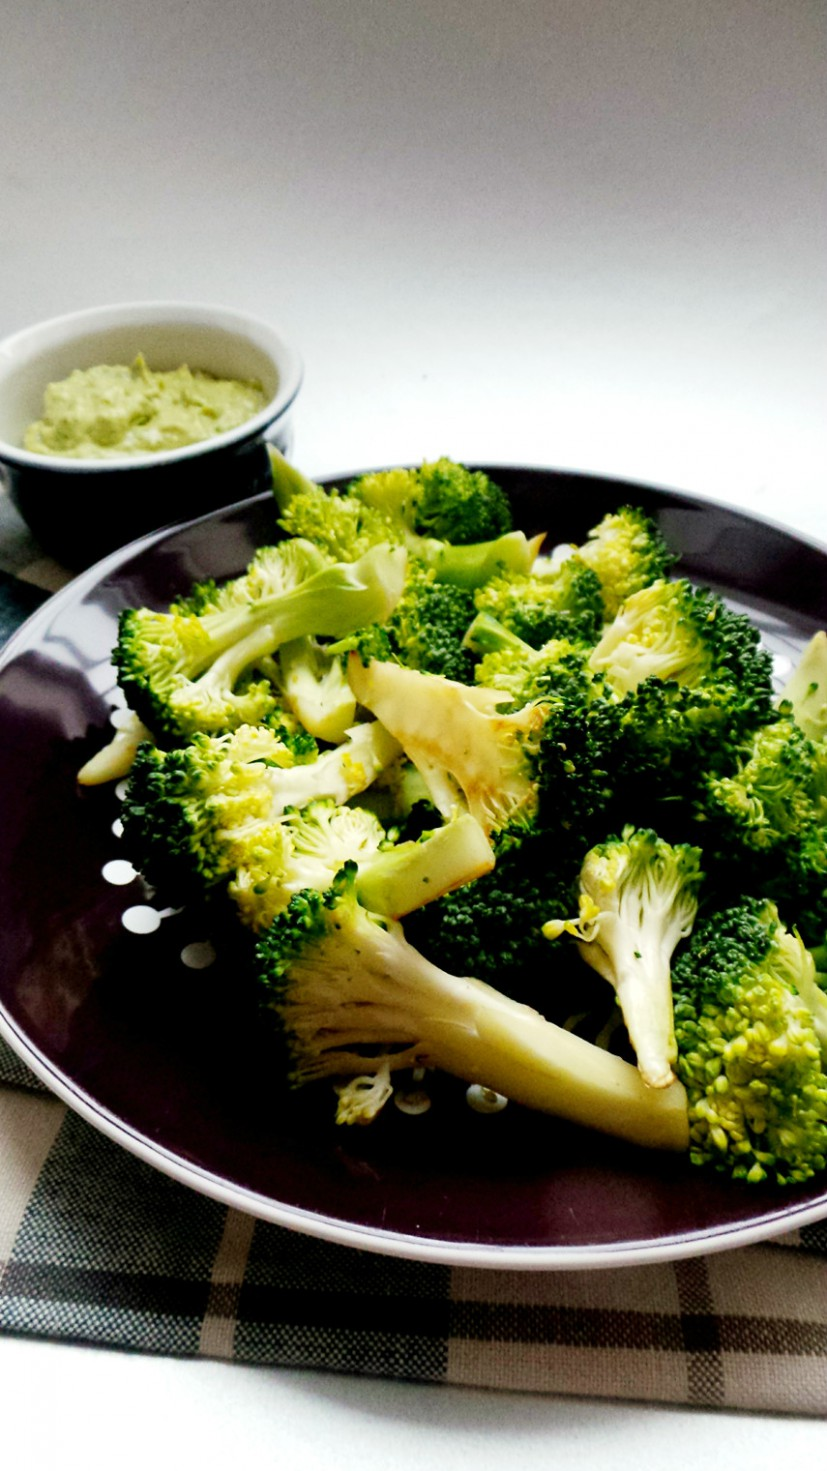 Broccoli anti-inflammatory food